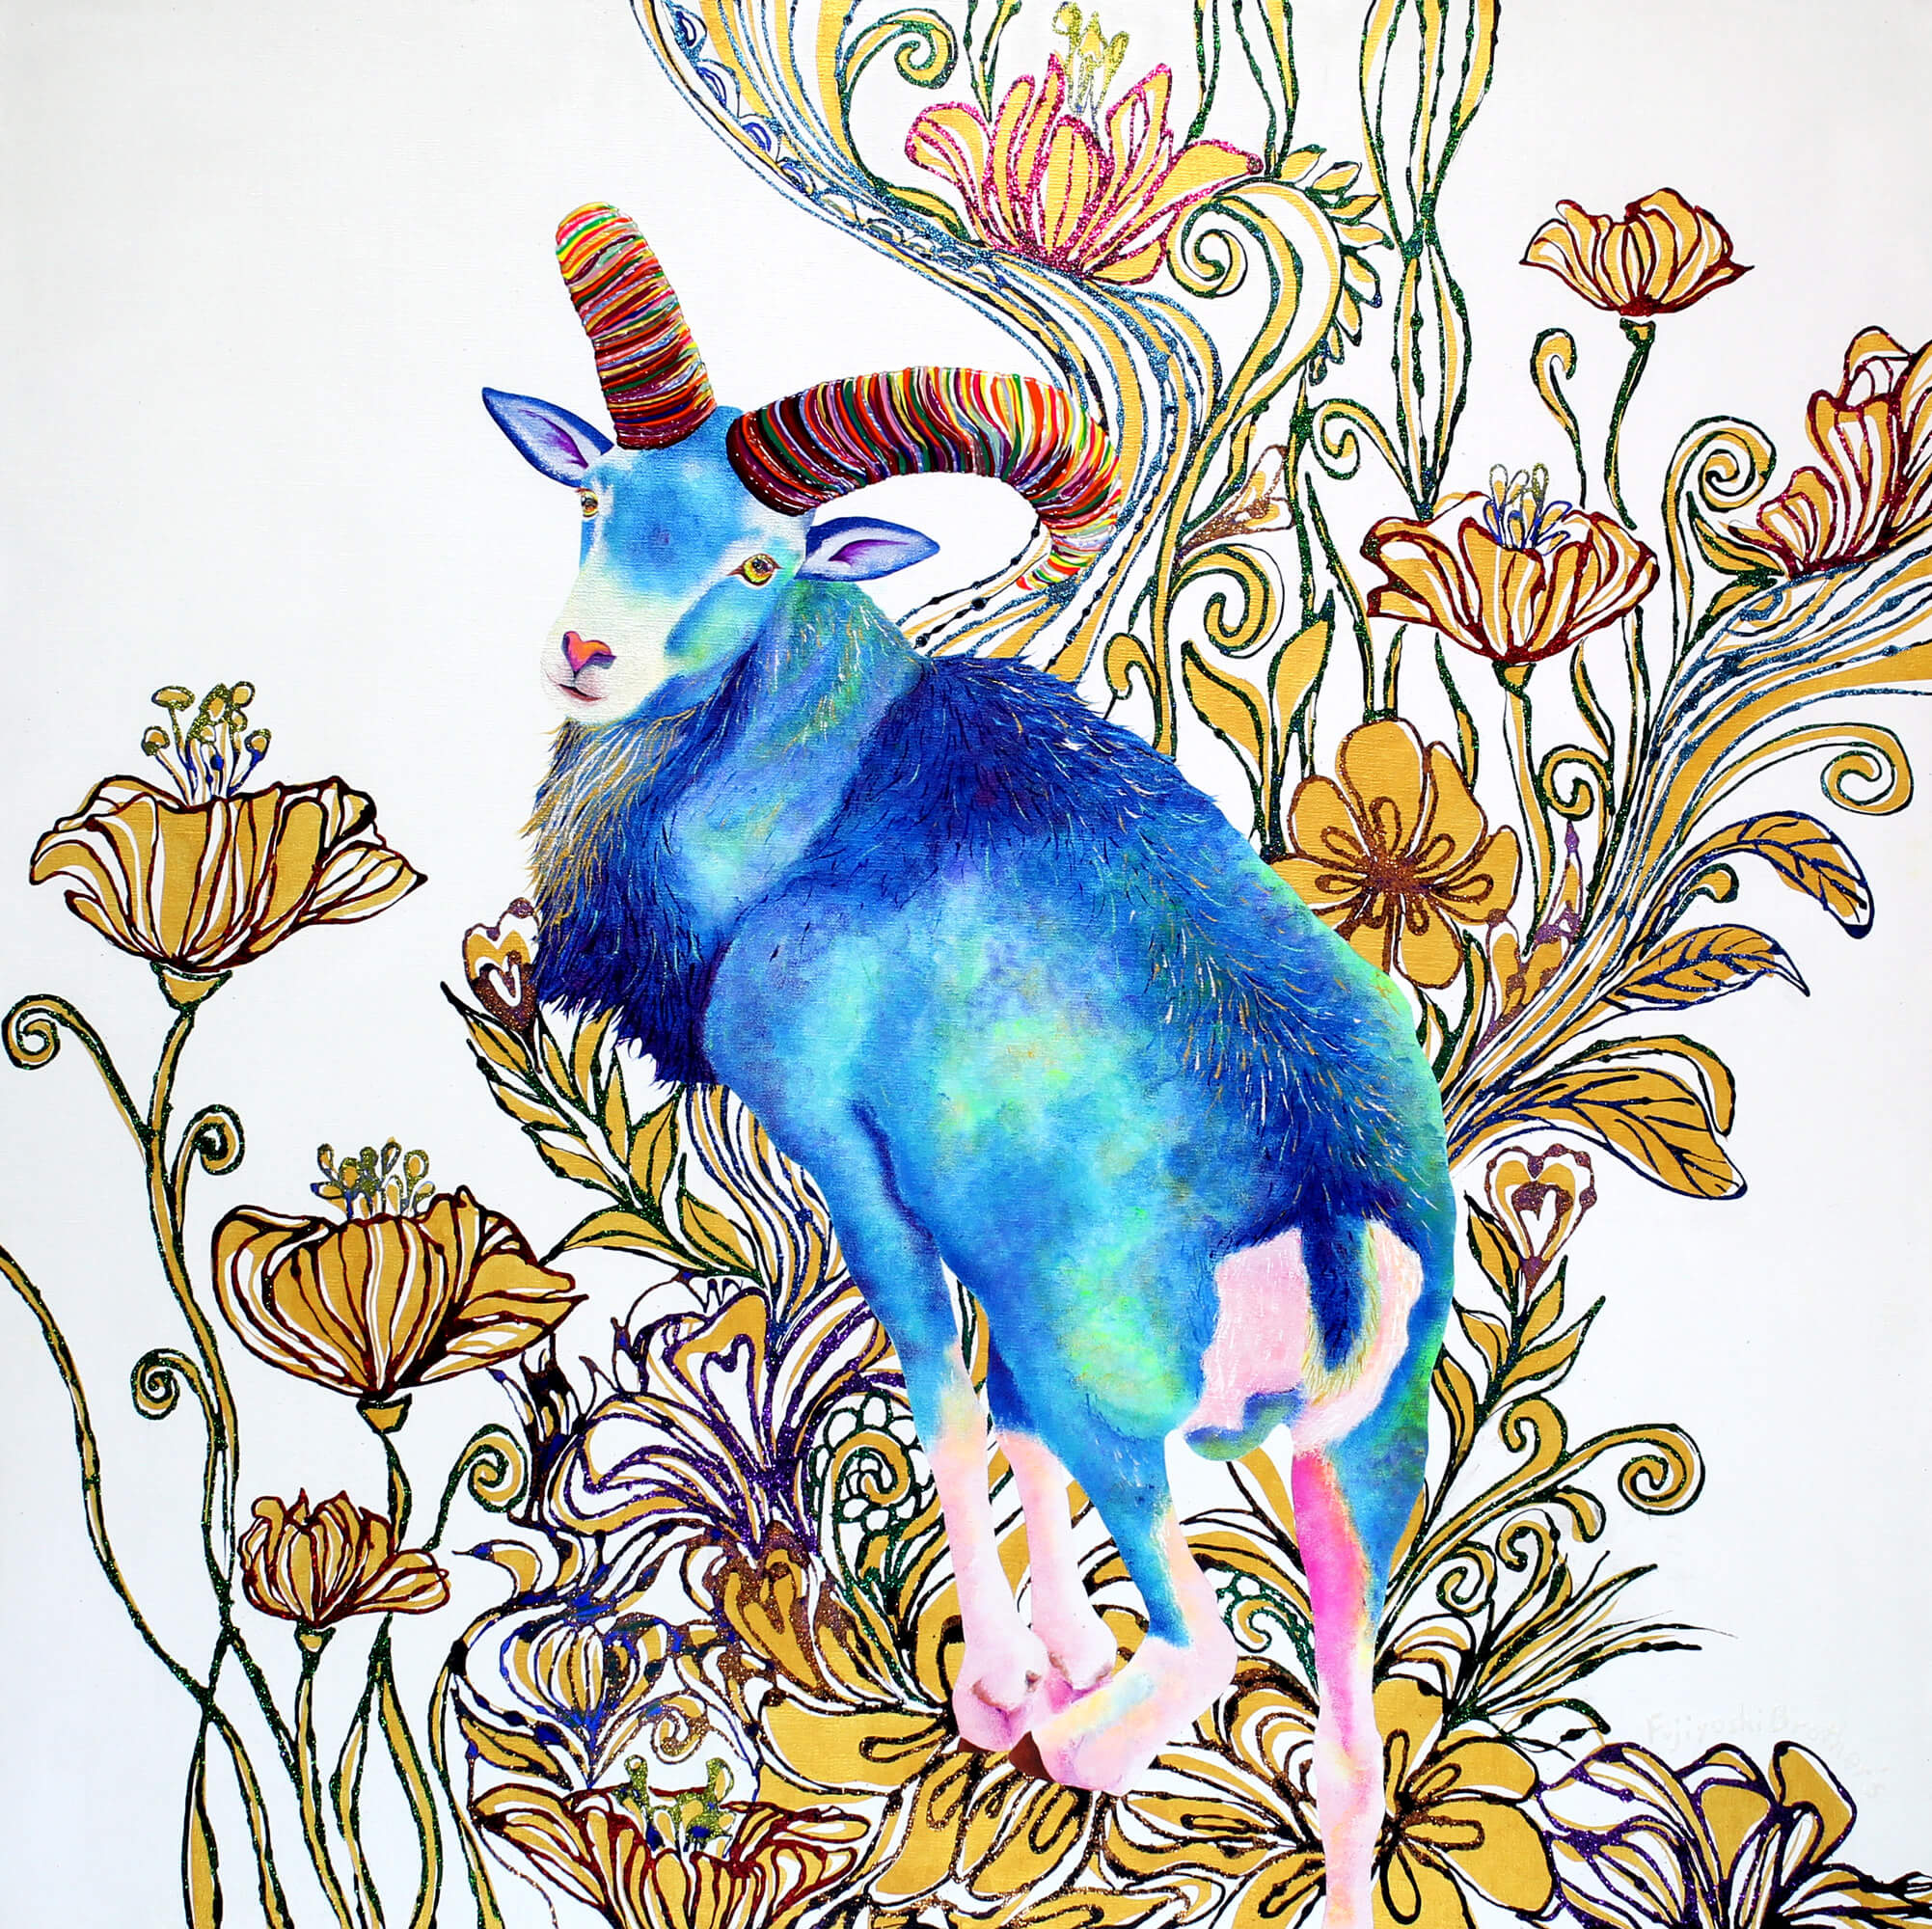 Blue-Mouflon-&-Gold-Flowers改行 Acrylic glitter and ink on canvas, 910×910mm, 2015